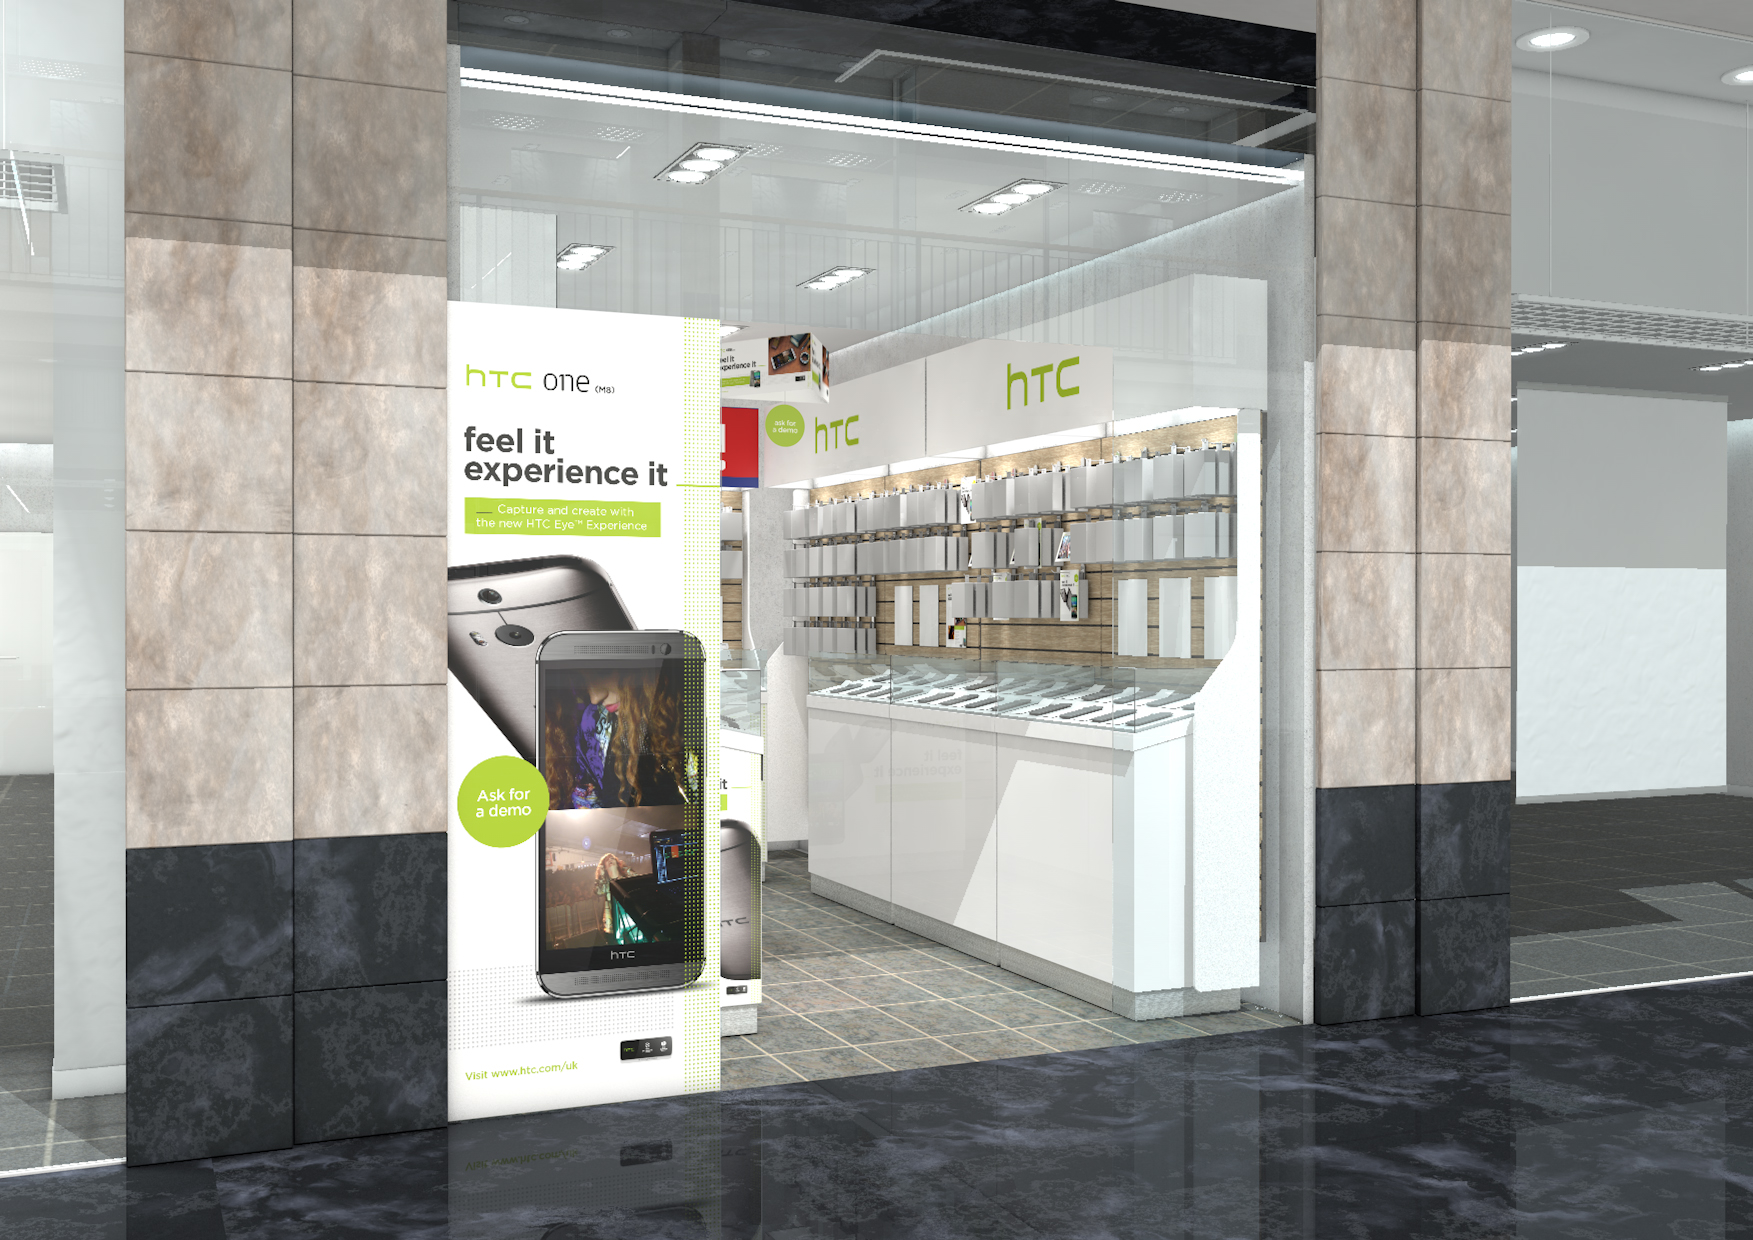 HTC_SmallShop_LeftSide0001.jpg